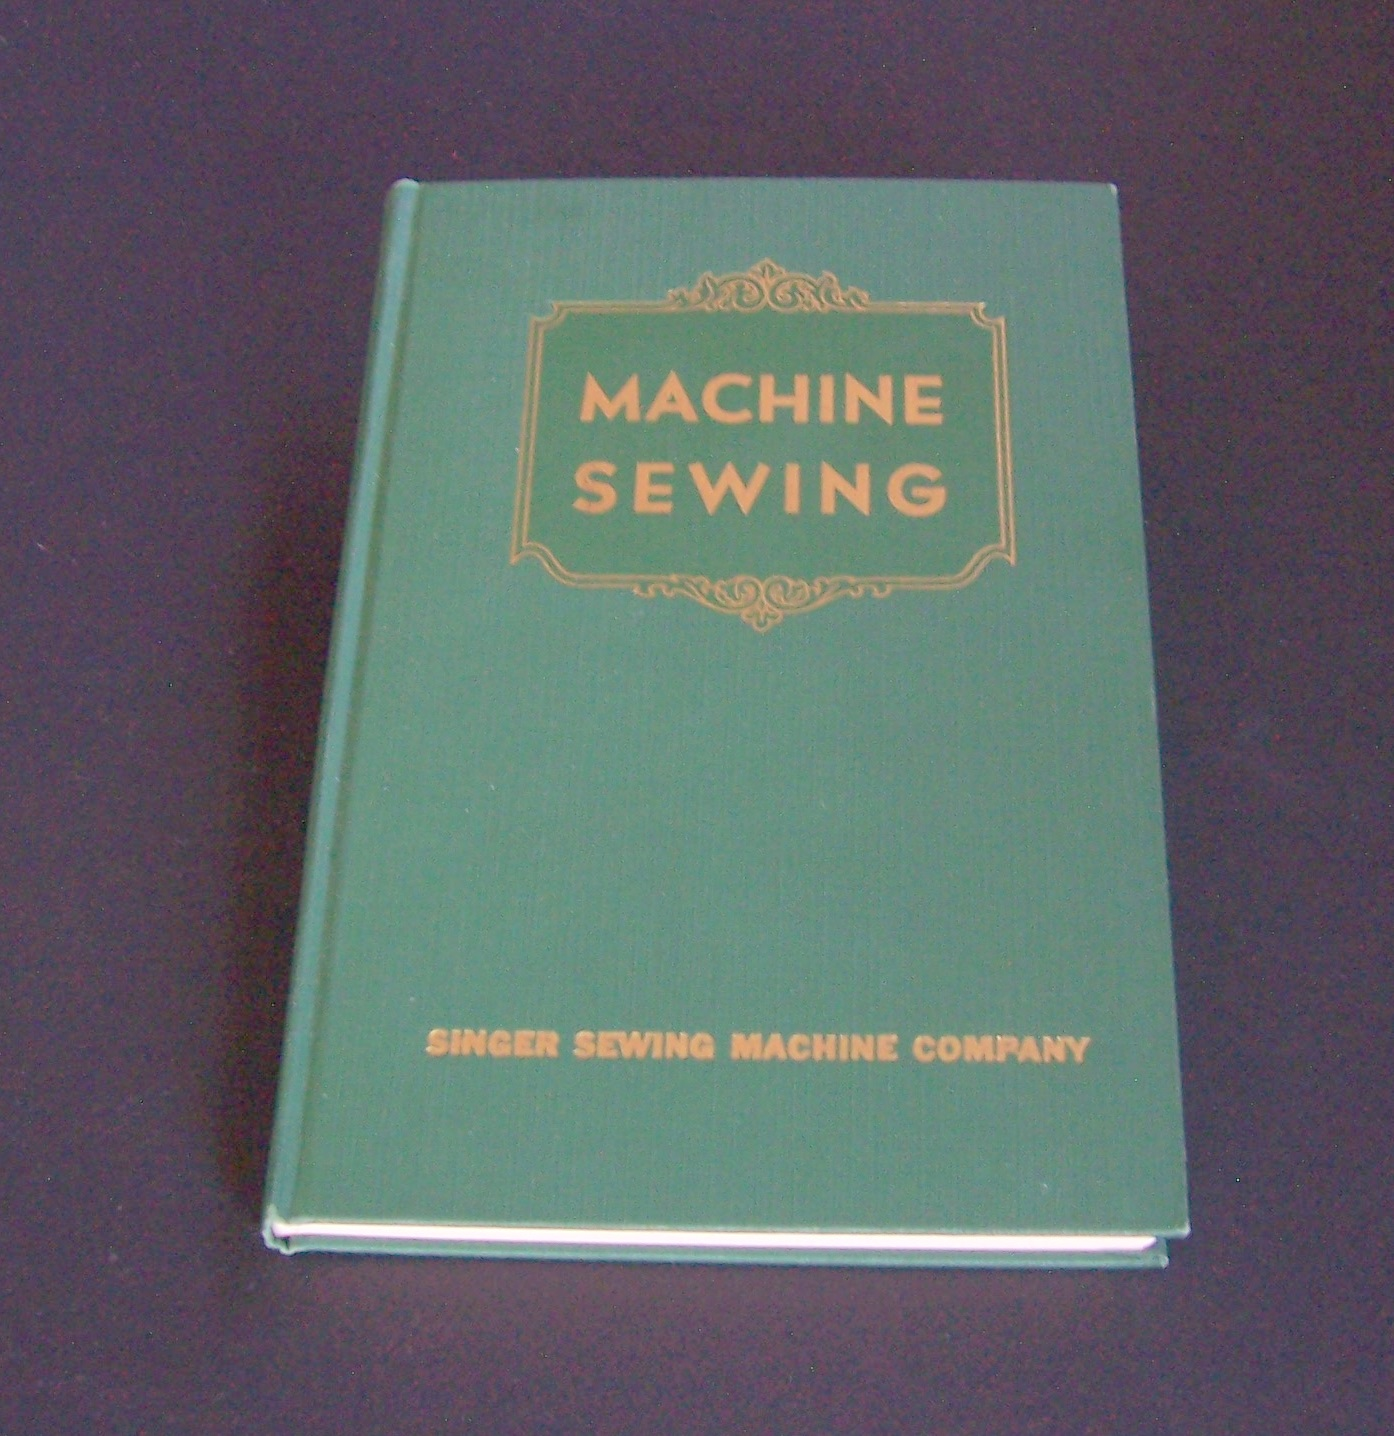 The machine book